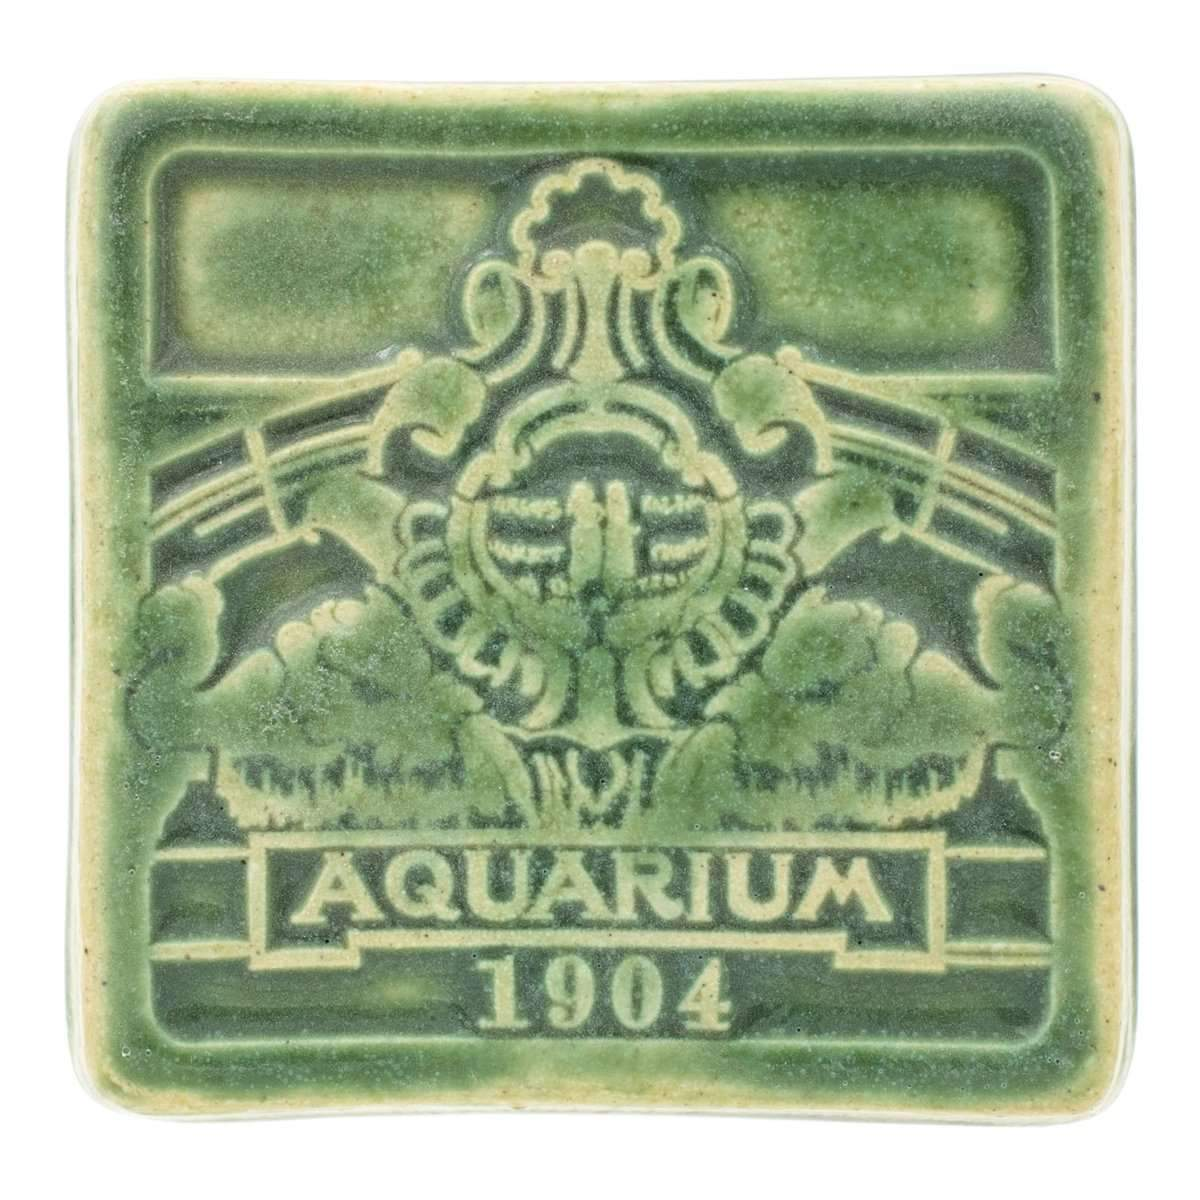 Belle Isle Aquarium Pewabic Tile - Pure Detroit